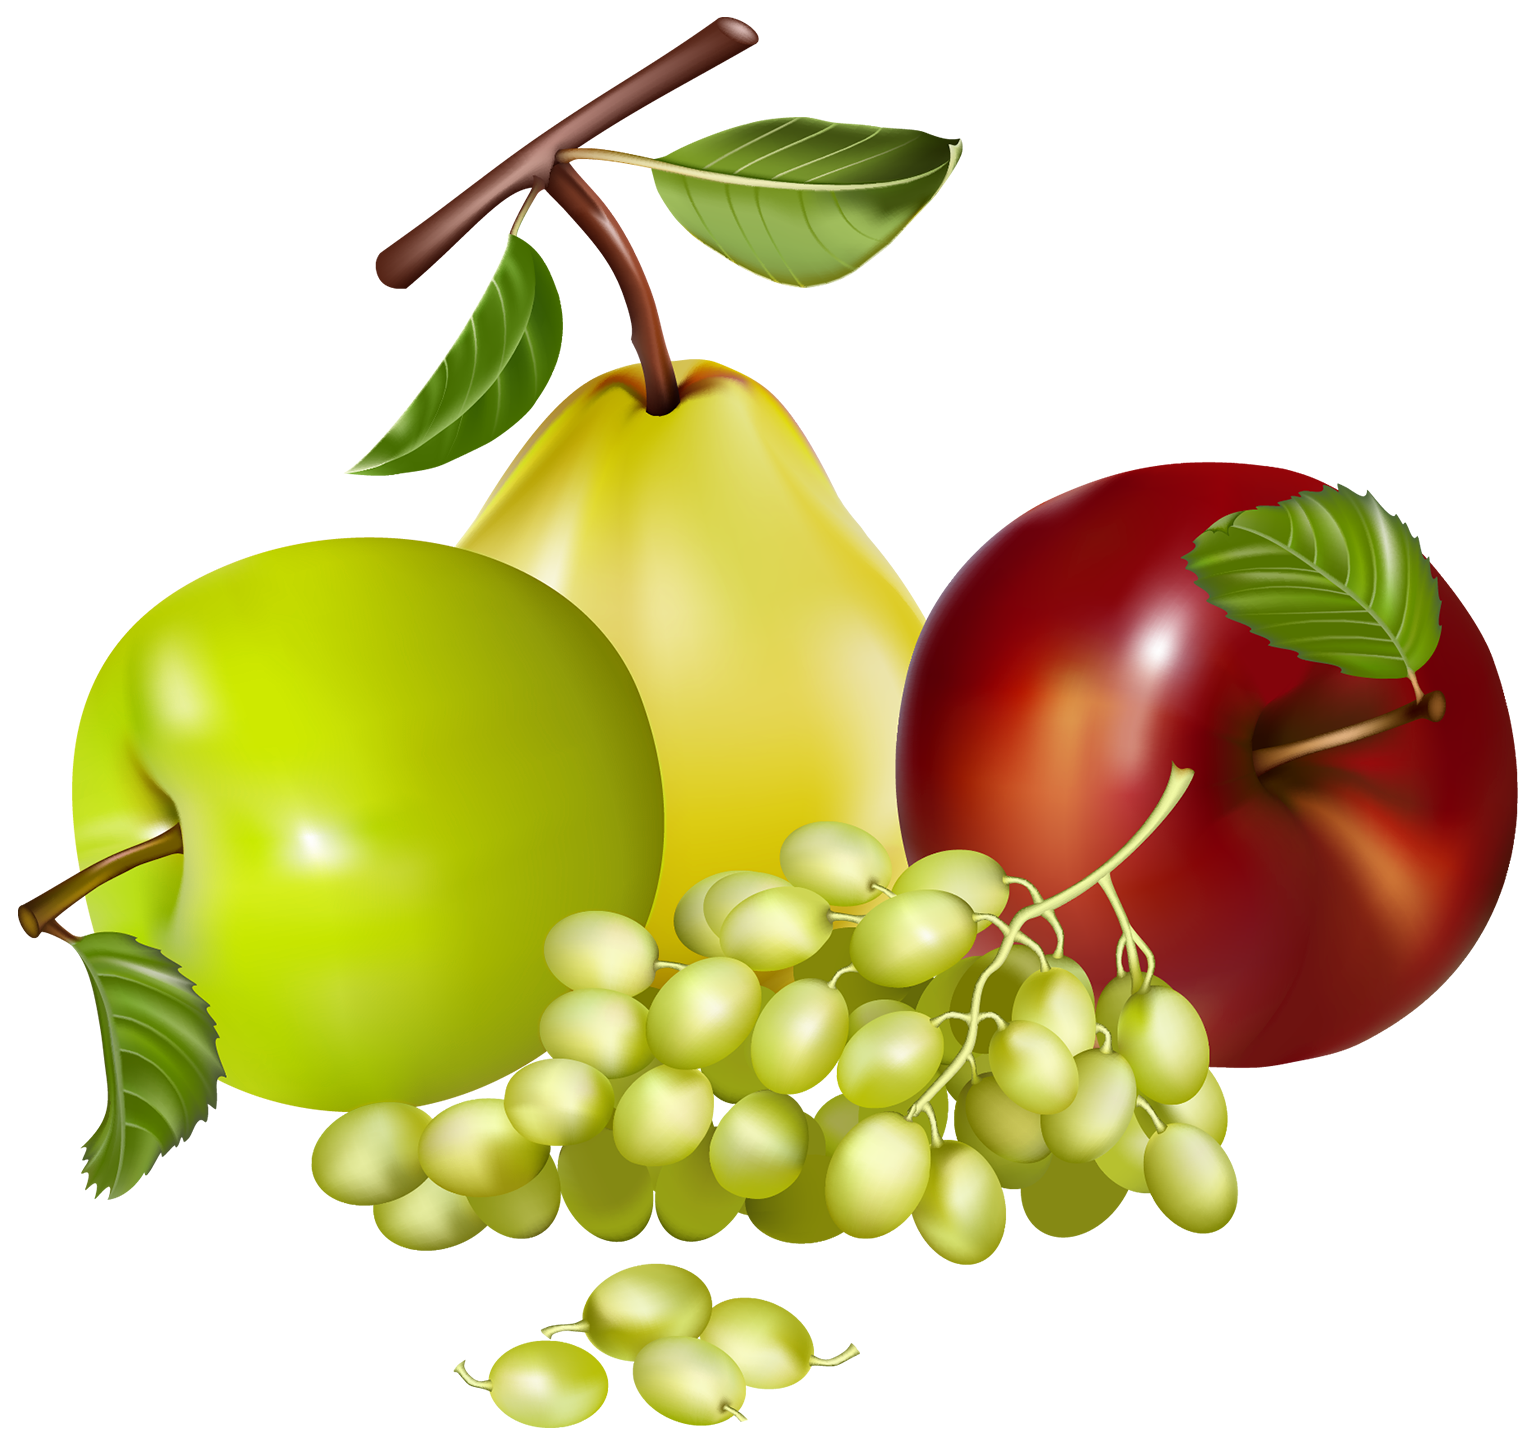 Fruits clipart png. Mixed best web